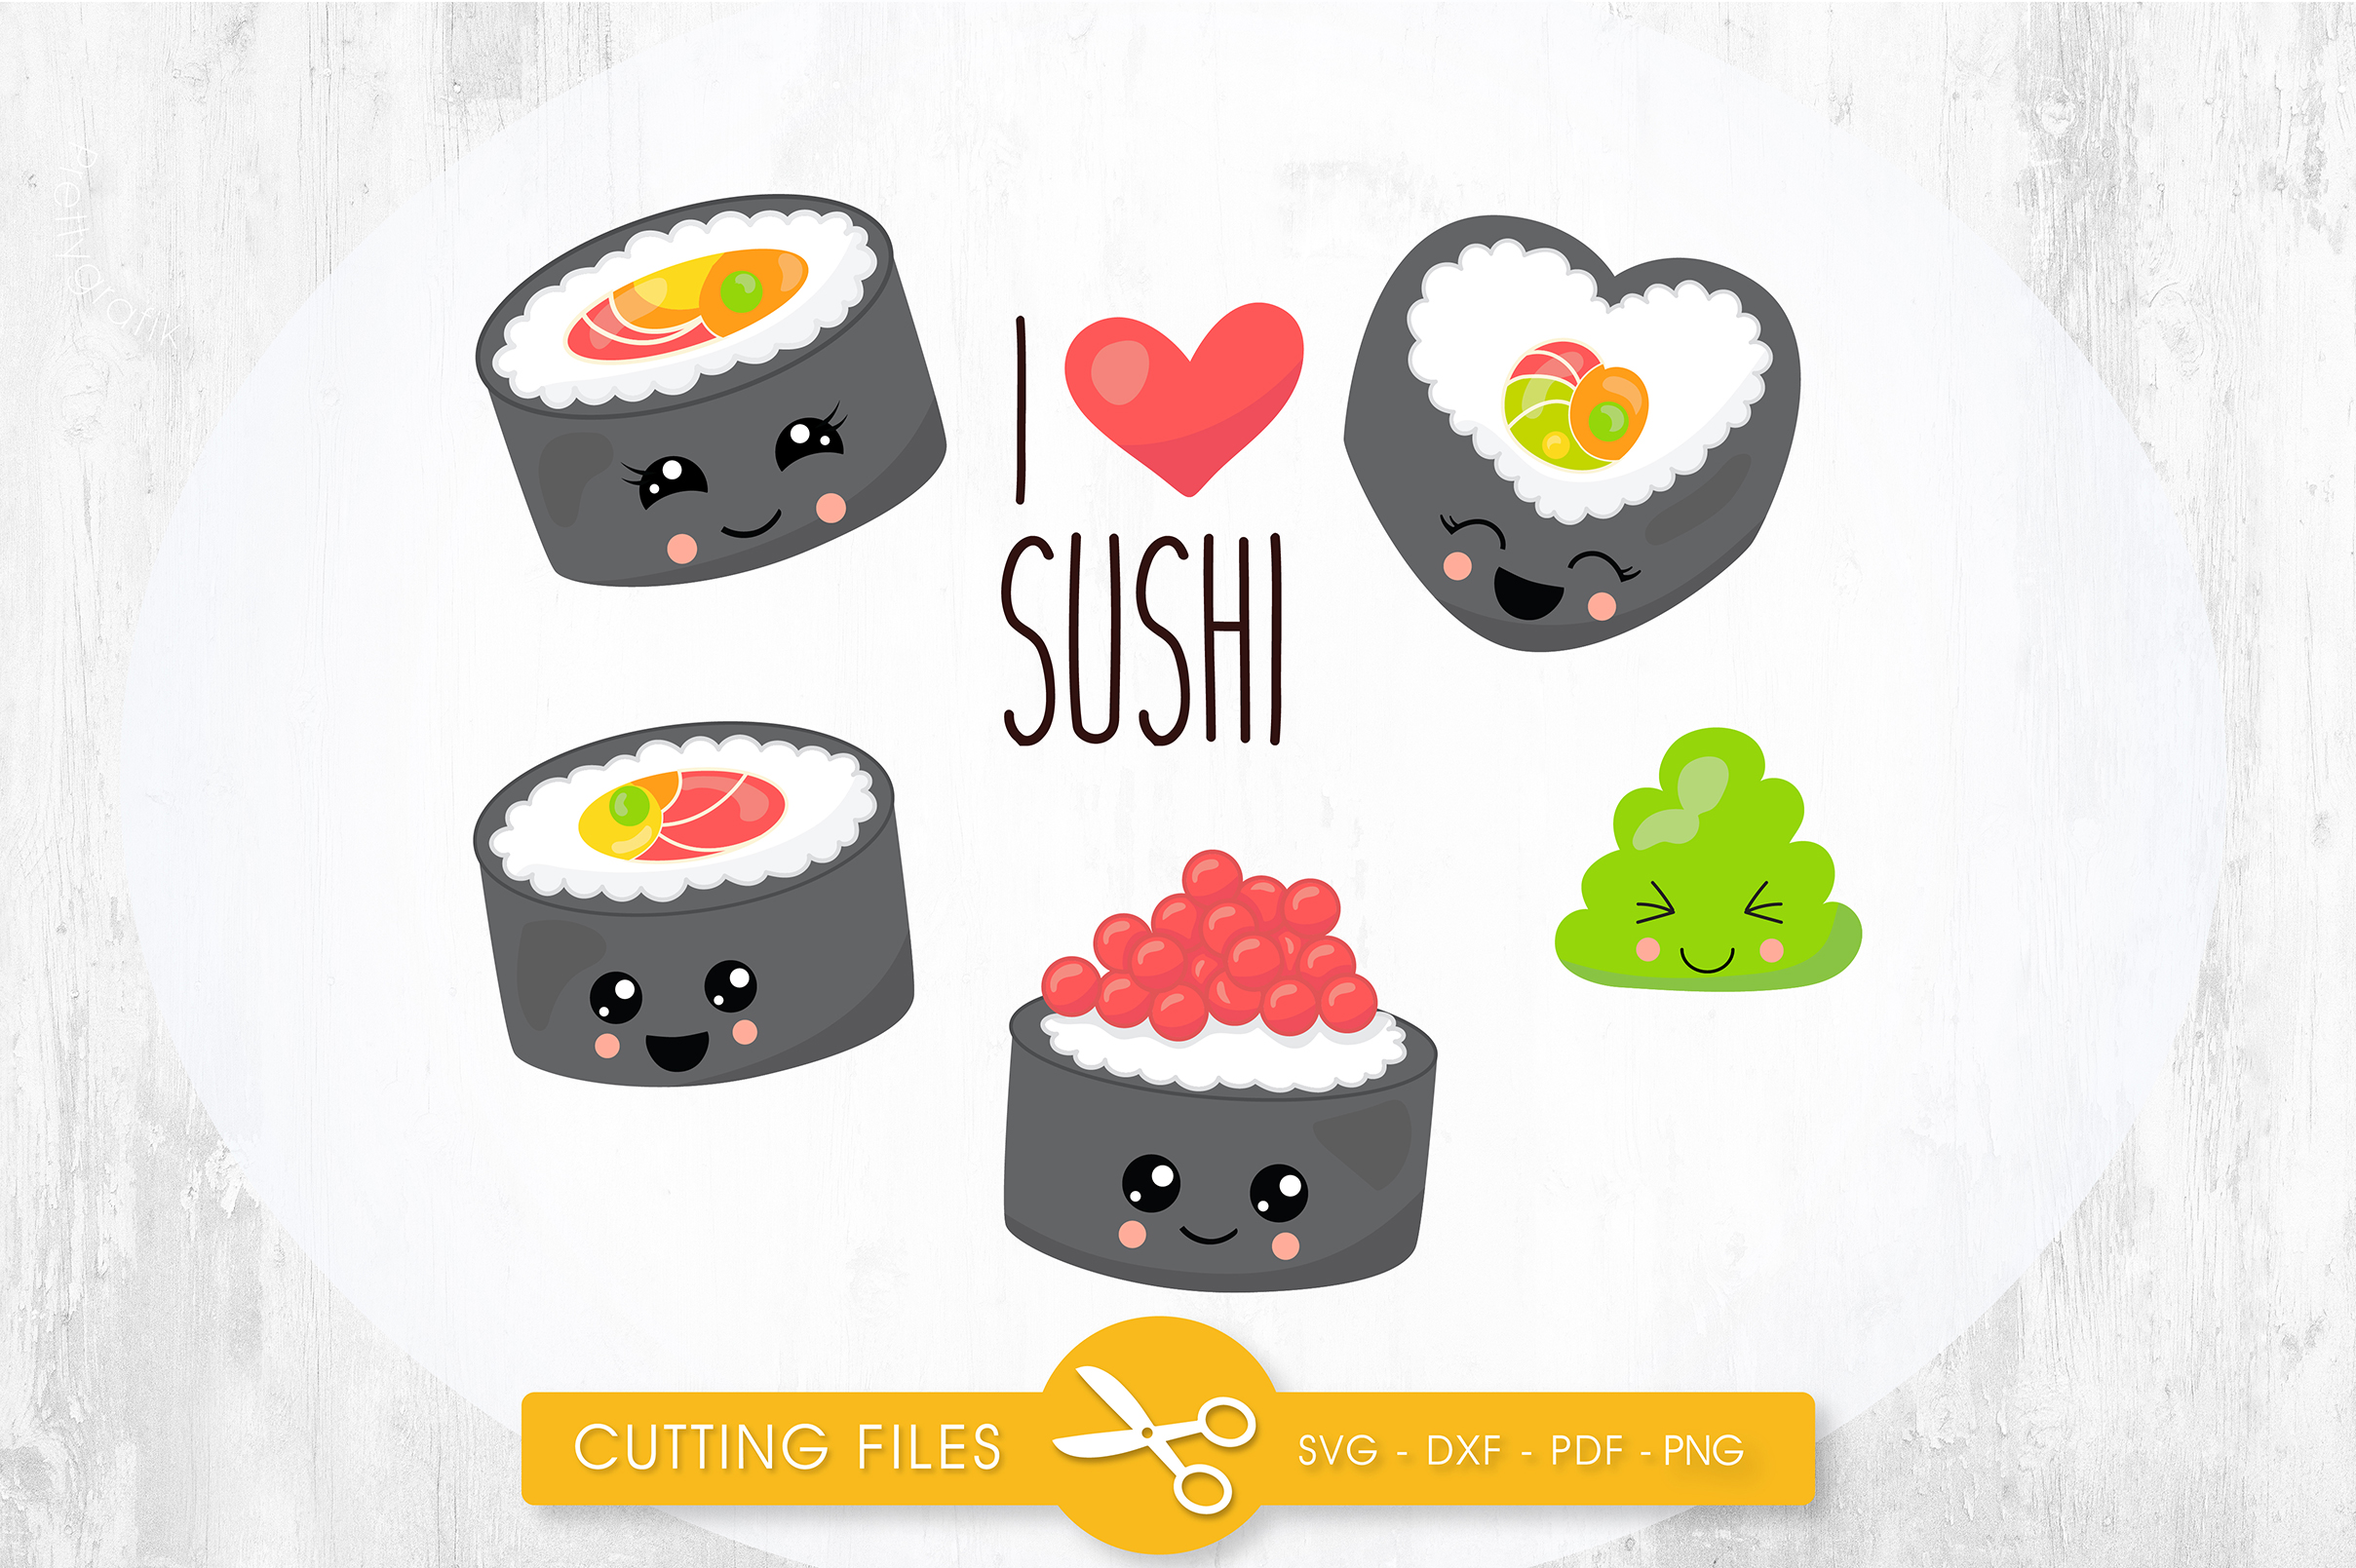 Download Free I Love Sushi Graphic By Prettycuttables Creative Fabrica for Cricut Explore, Silhouette and other cutting machines.